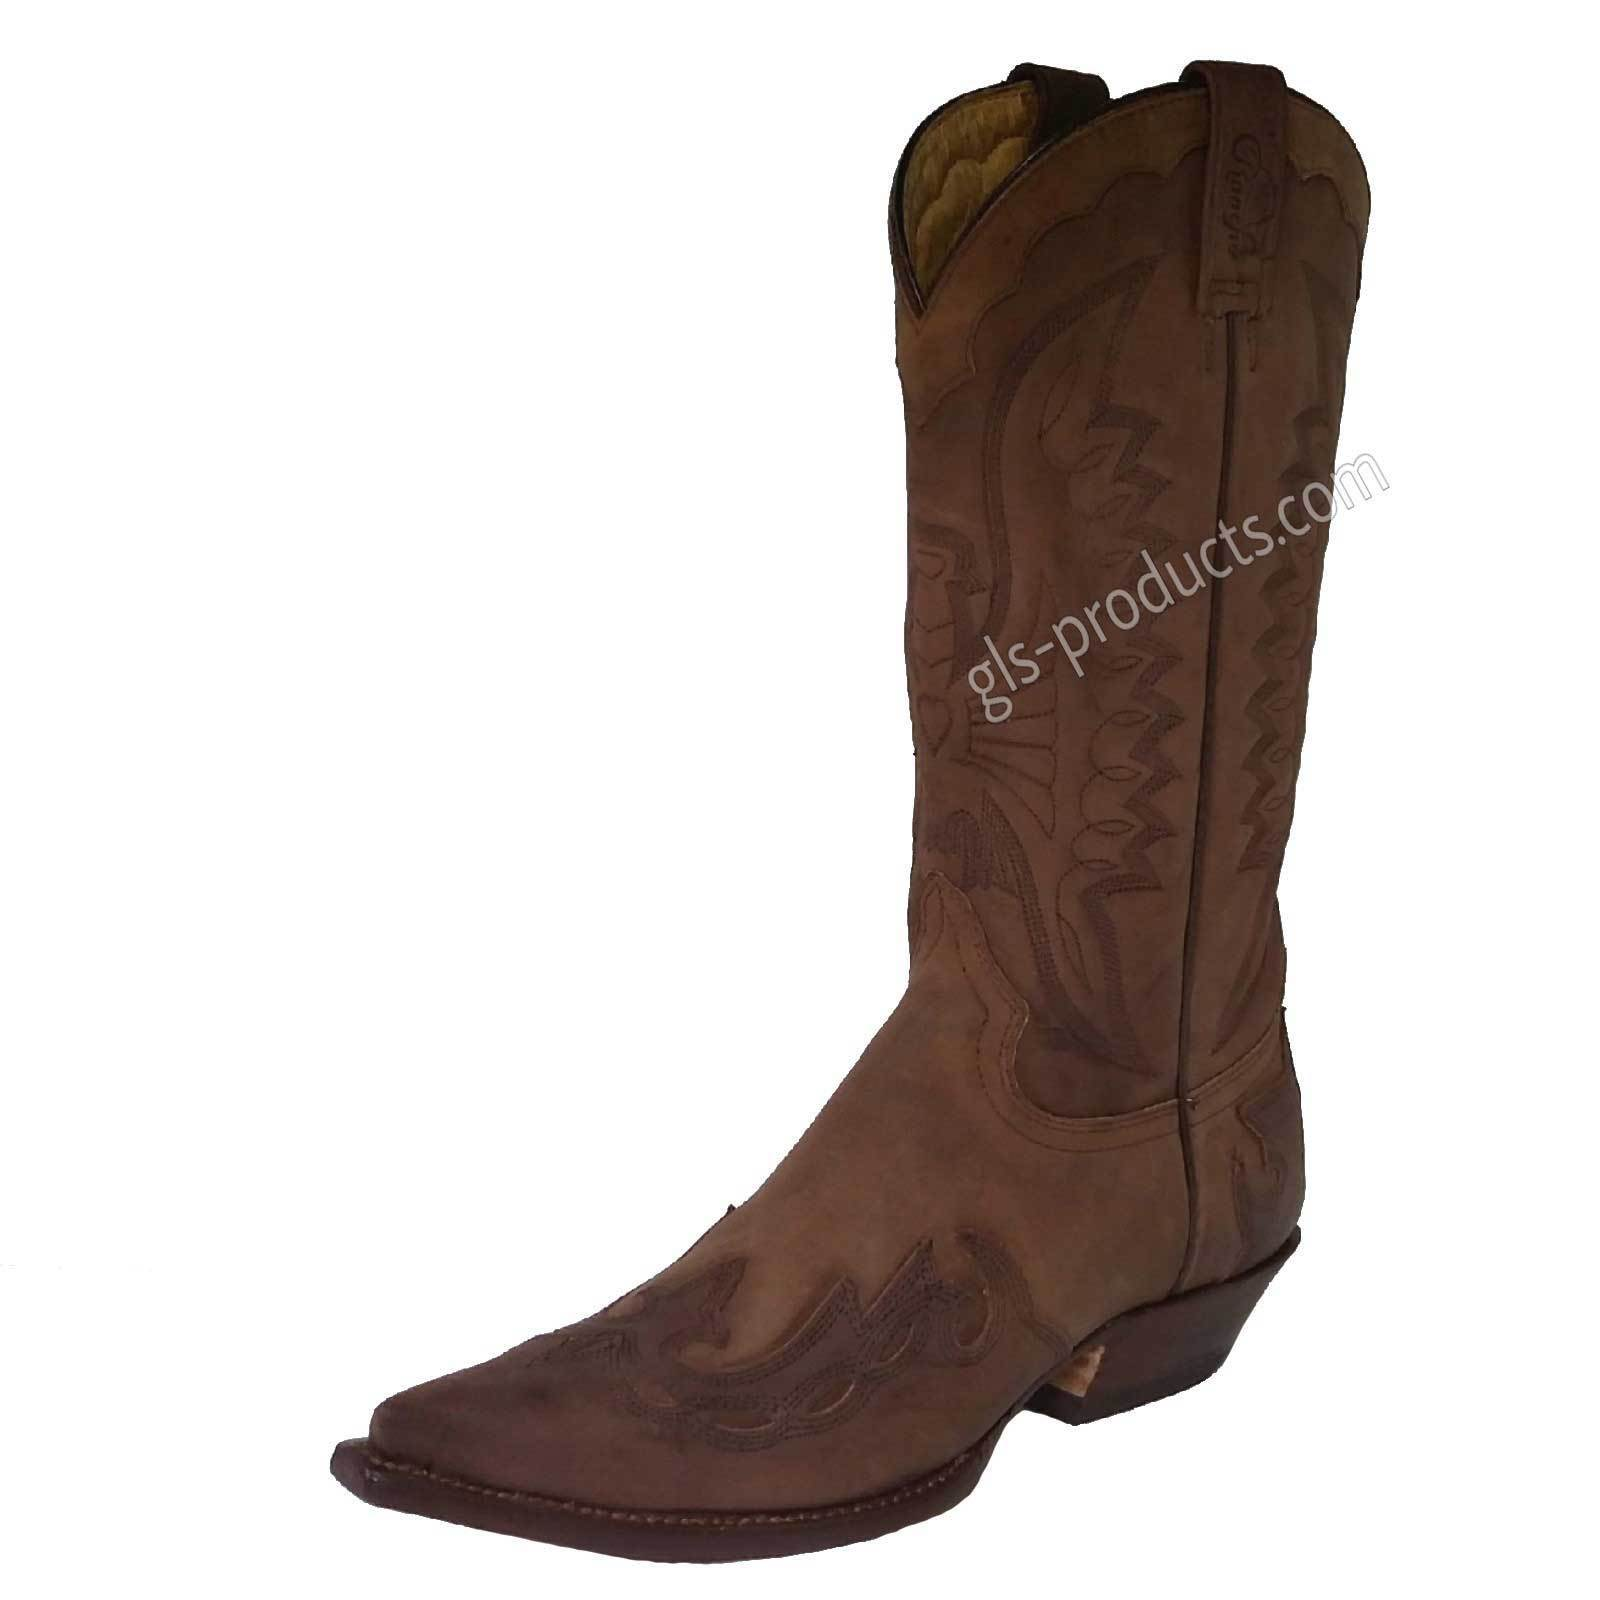 Rancho Illinois - Cowboy Boots with Flames